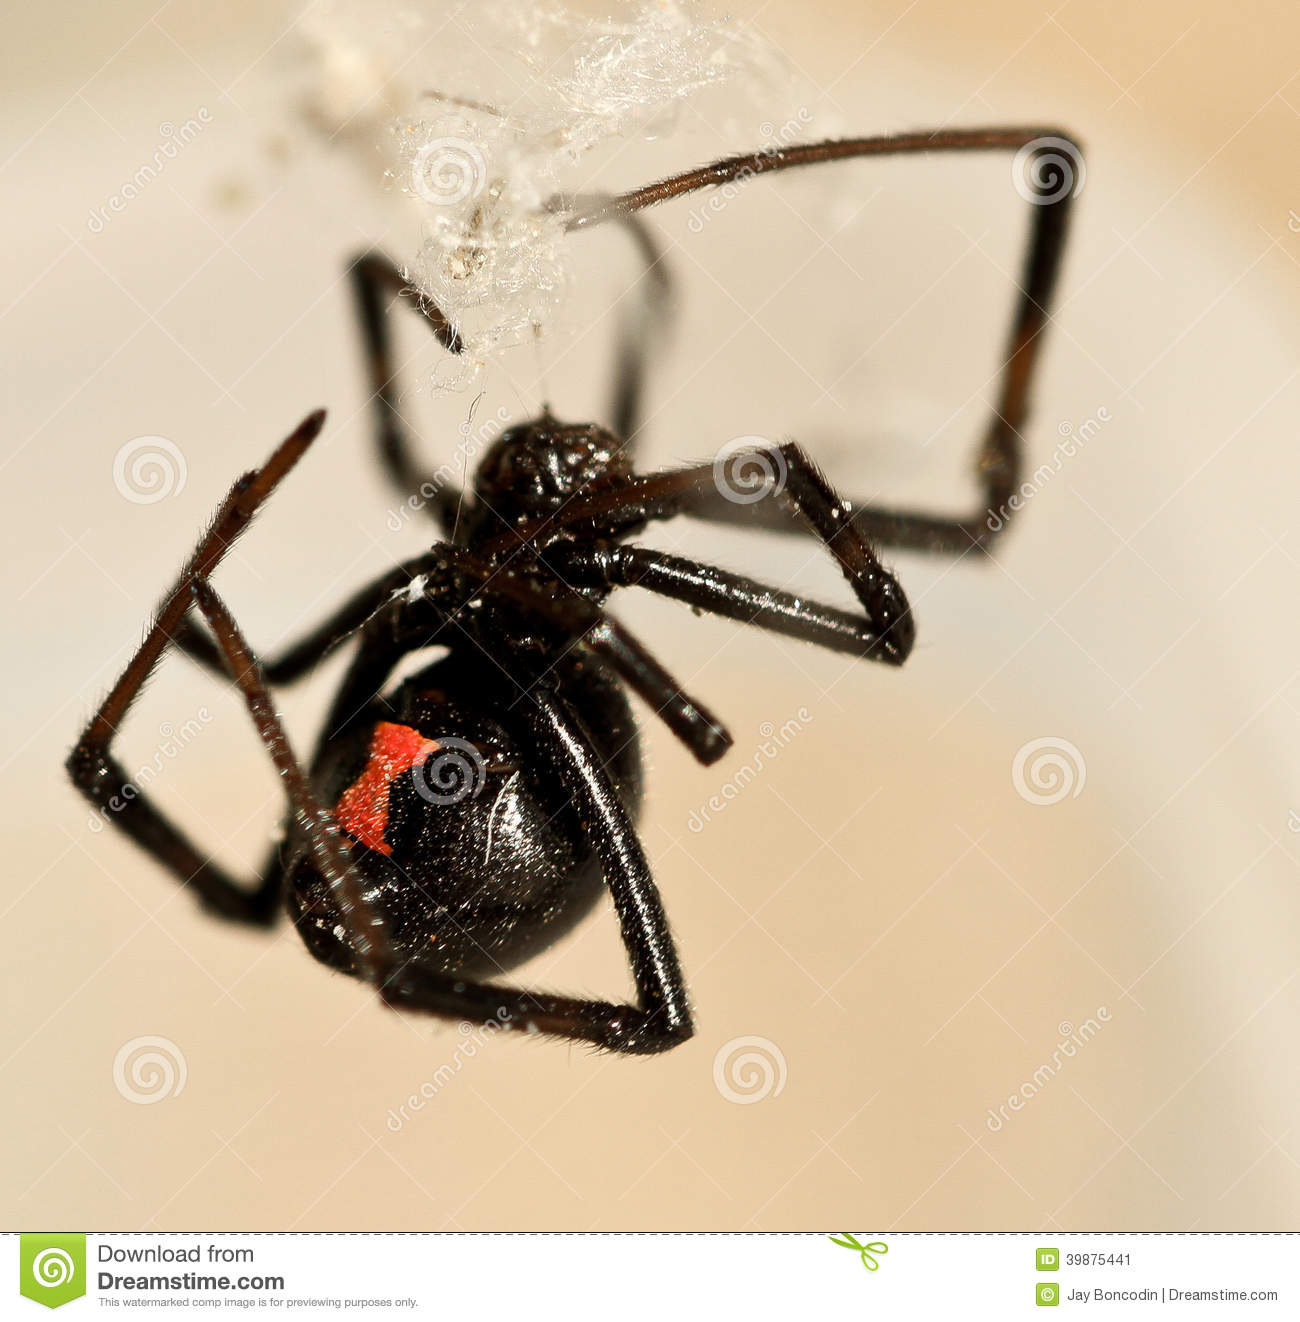 how to catch black widow spiders